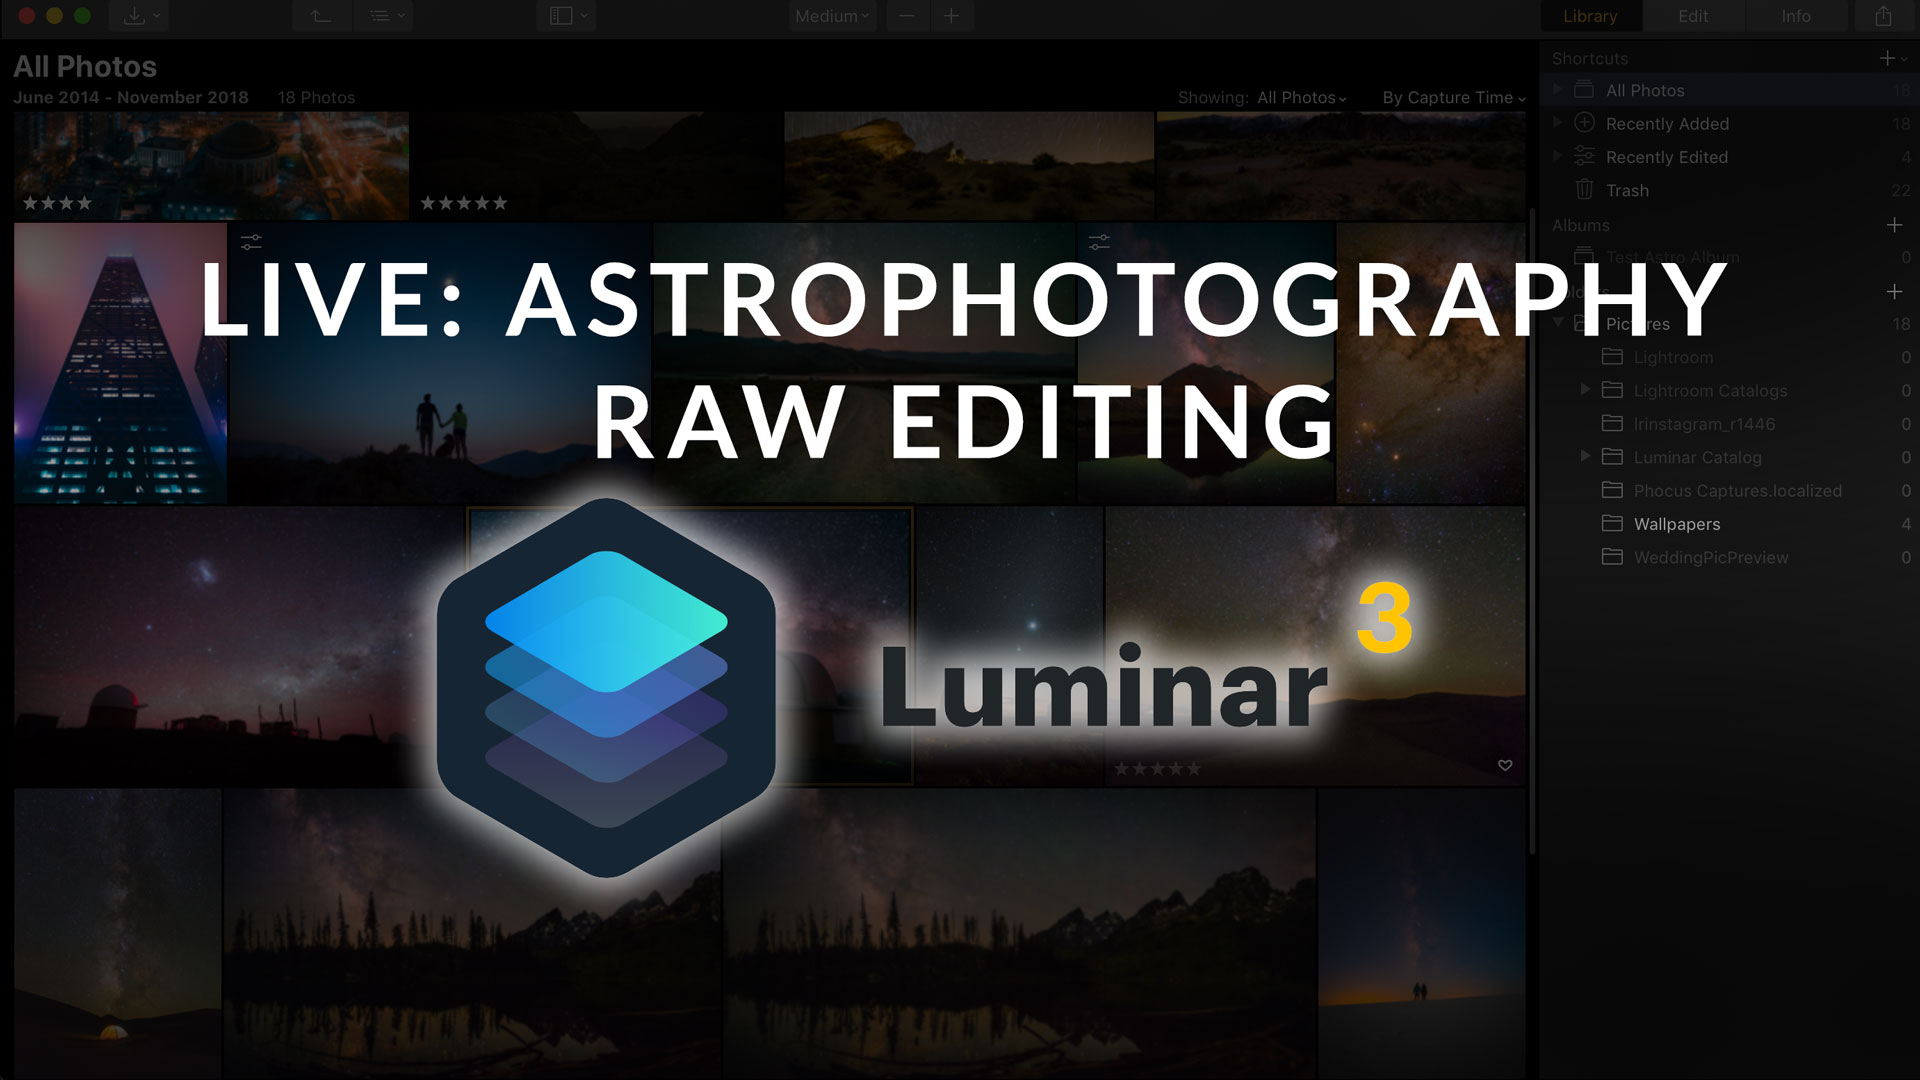 Live Review: Astrophotography RAW Editing in Luminar 3